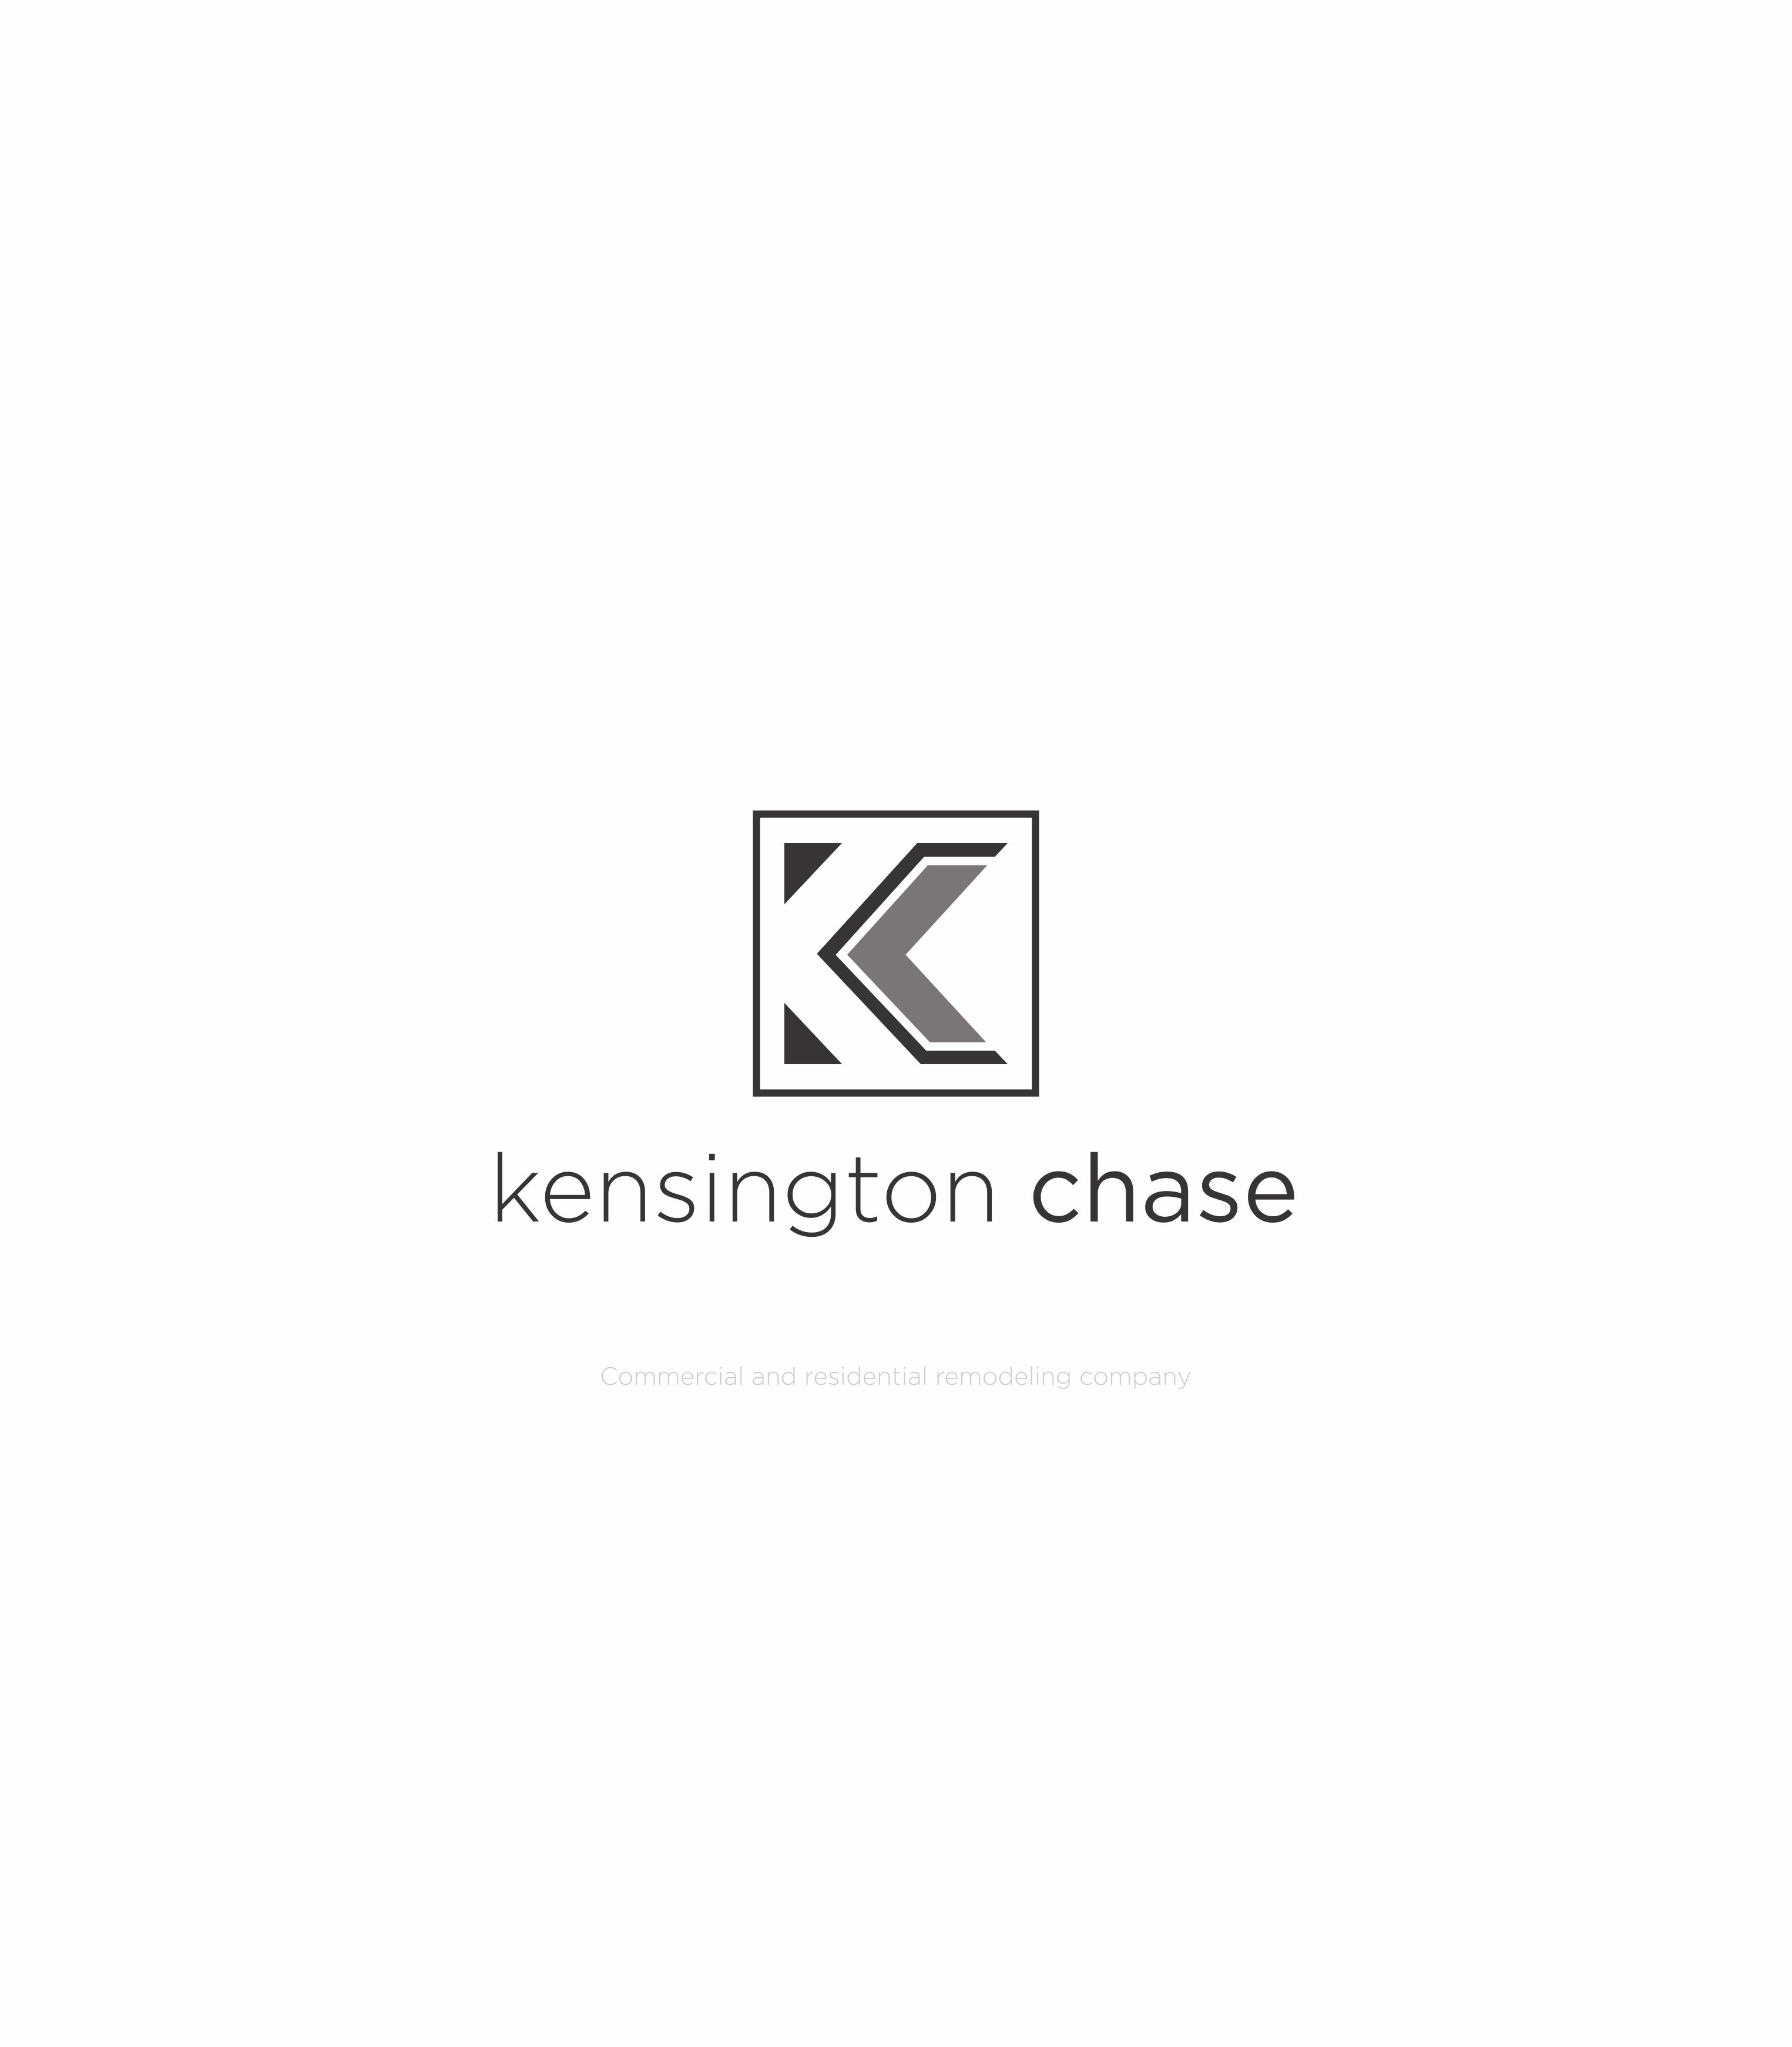 Logo Design by Raymond Garcia - Entry No. 155 in the Logo Design Contest Kensington Chase  Logo Design.